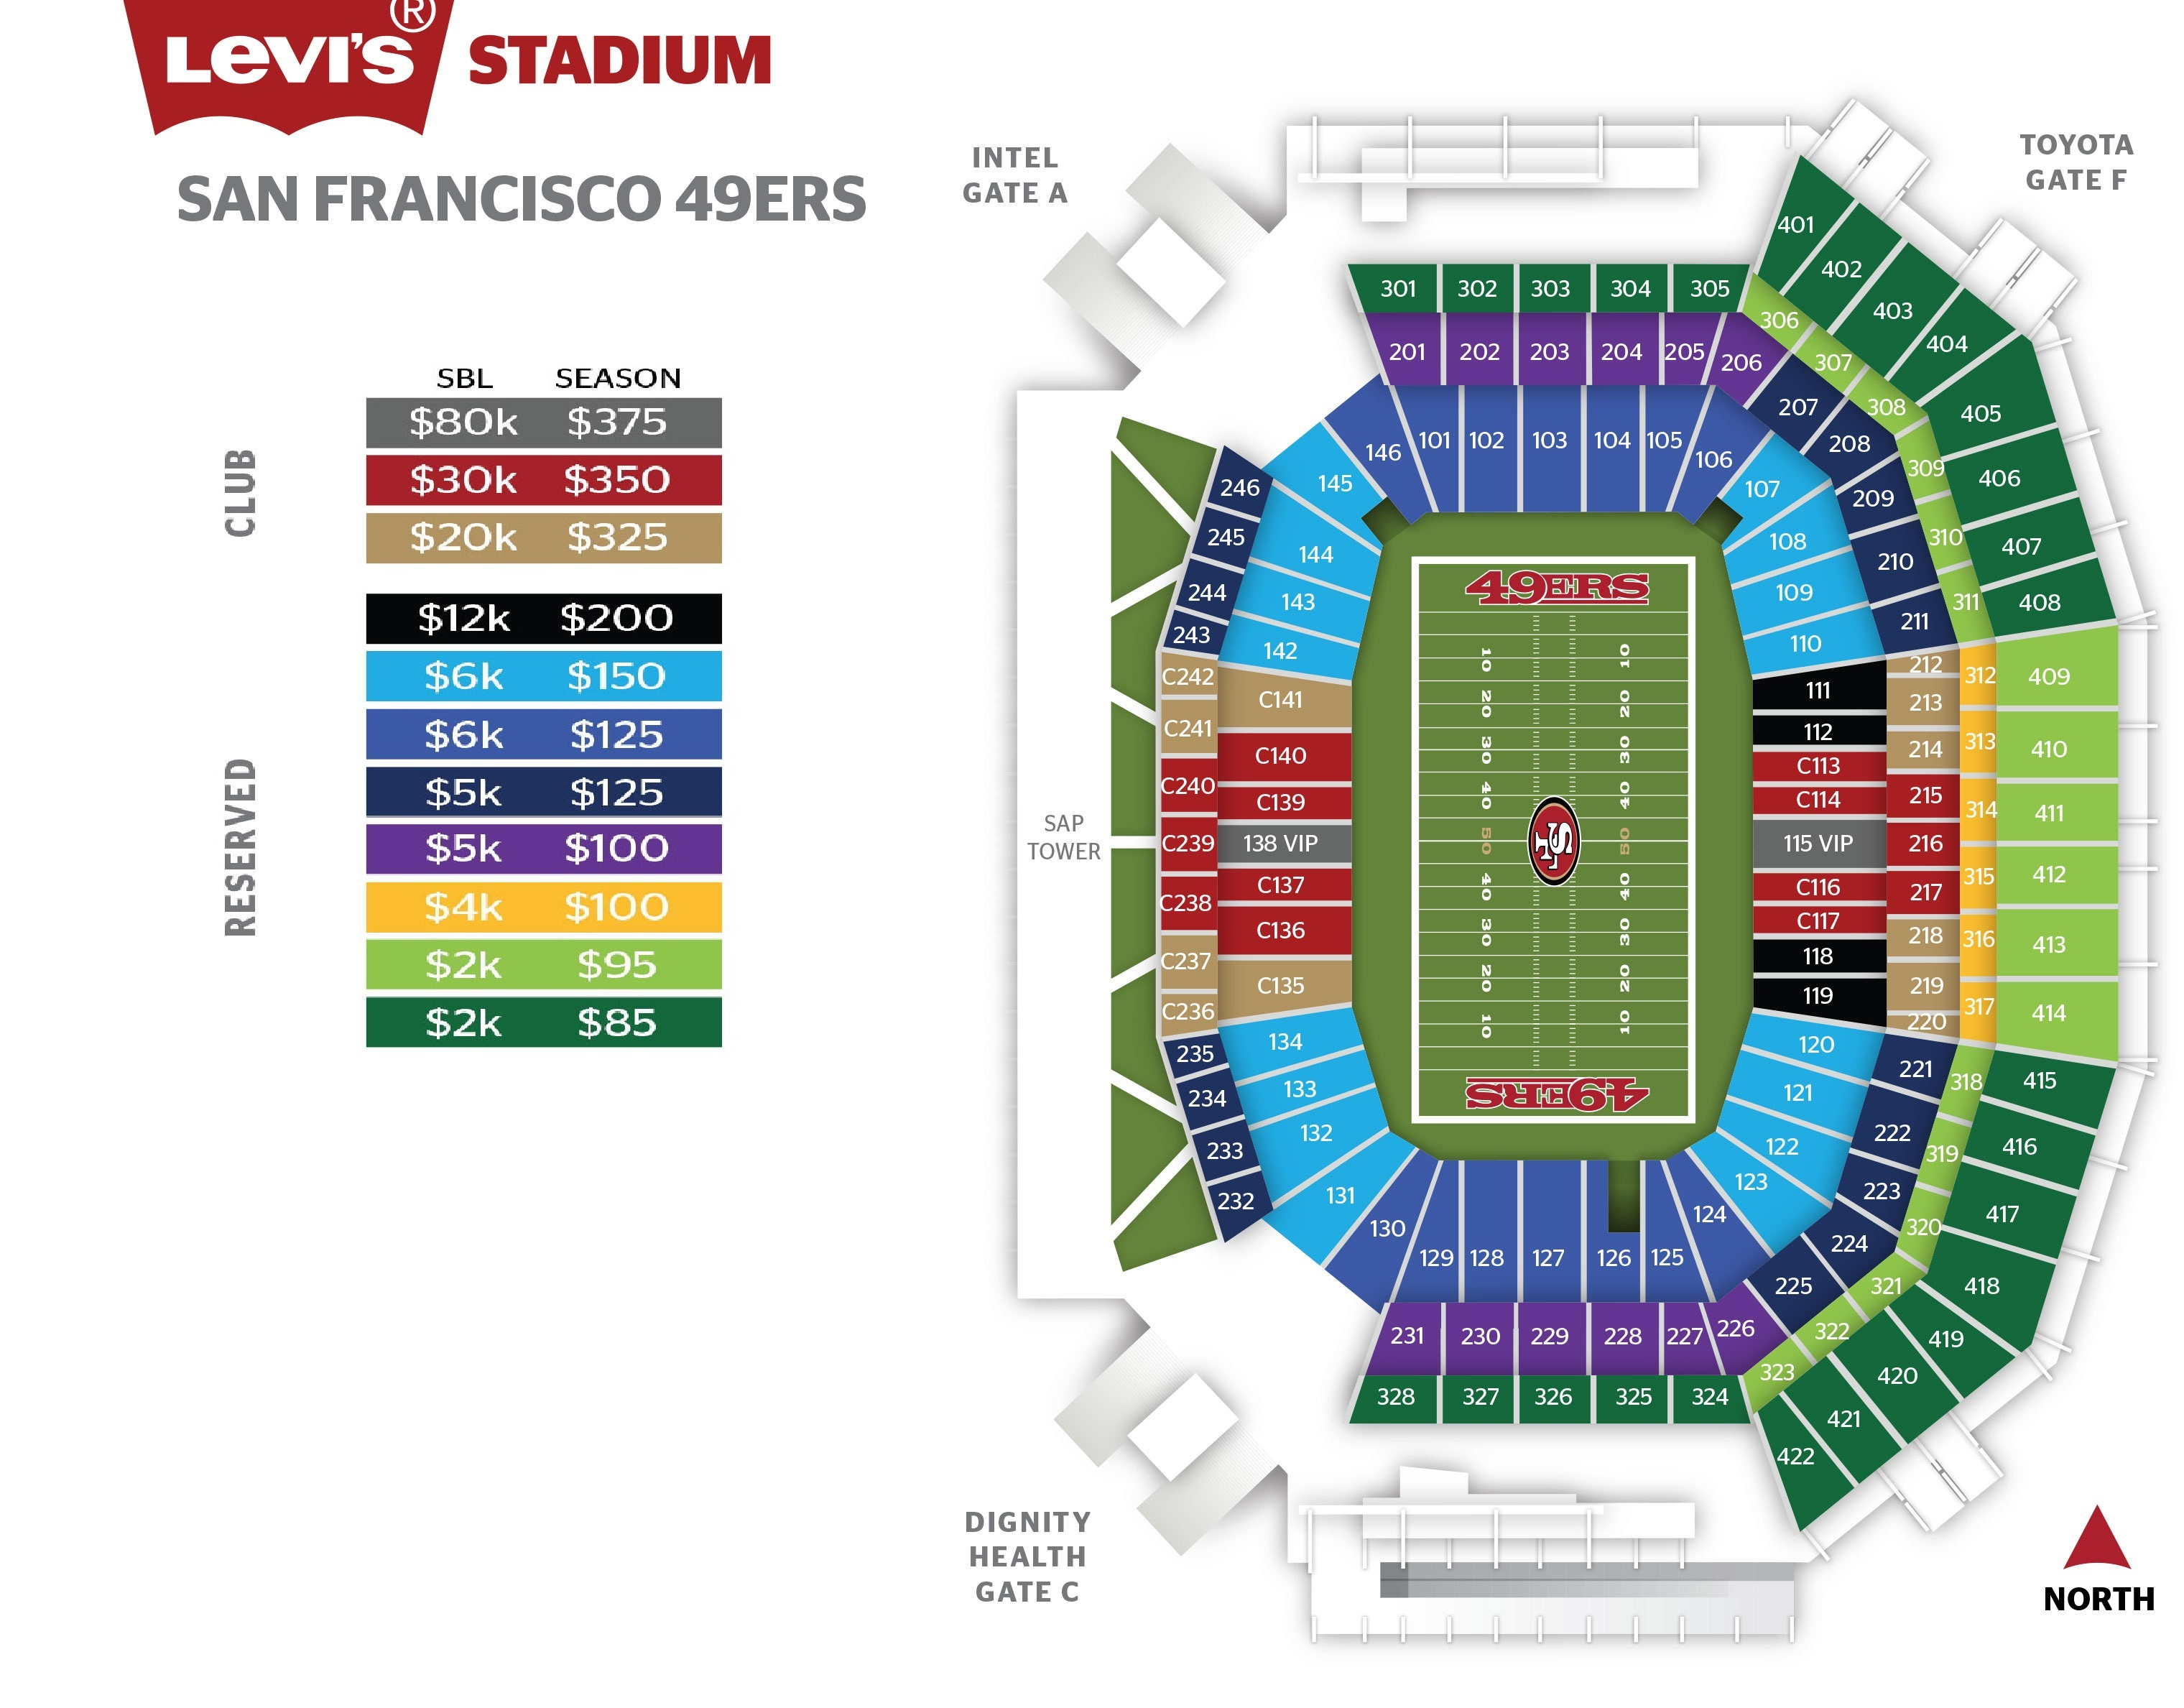 49ers seating chart and prices